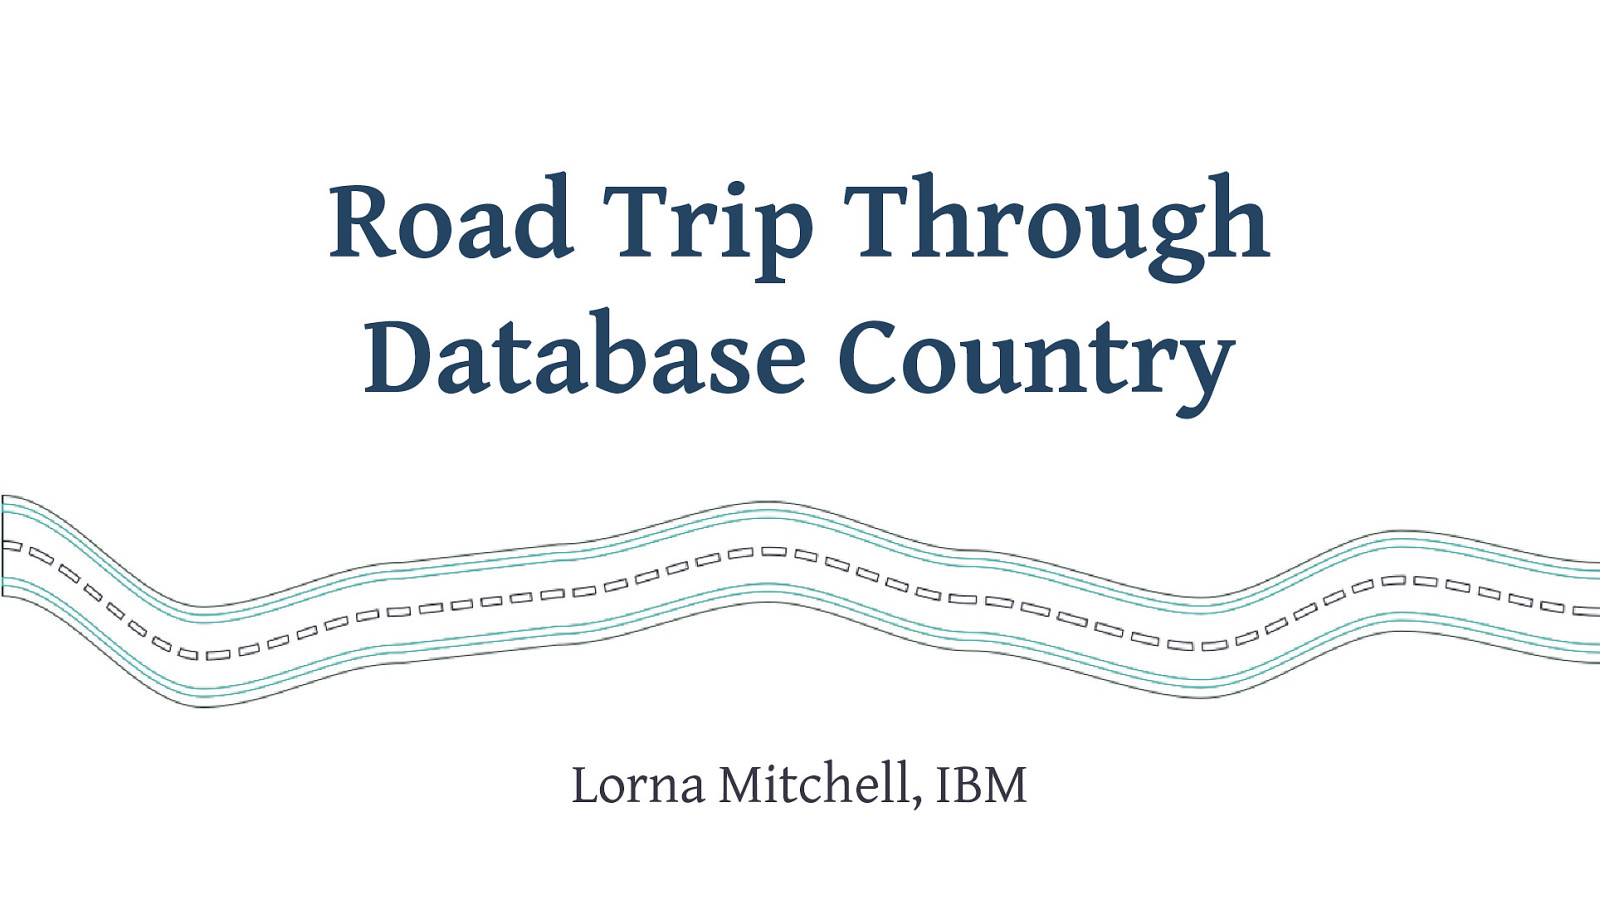 Road Trip Through Database Country